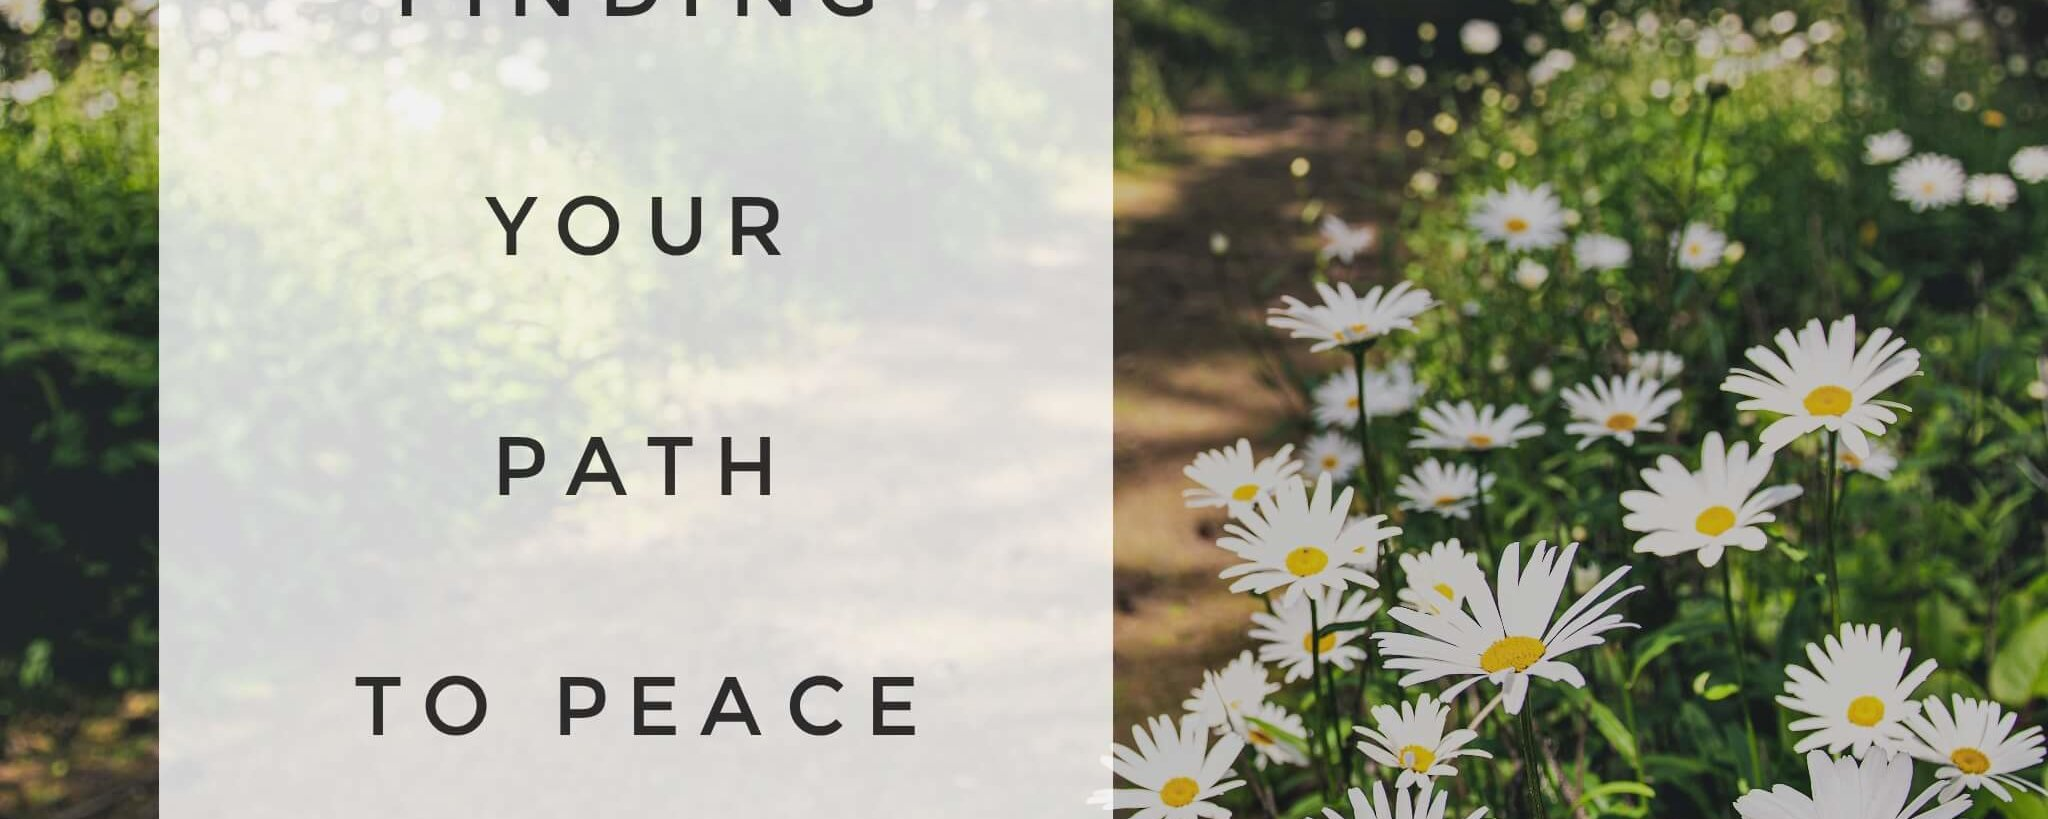 Practice. Finding Your Path to Peace.